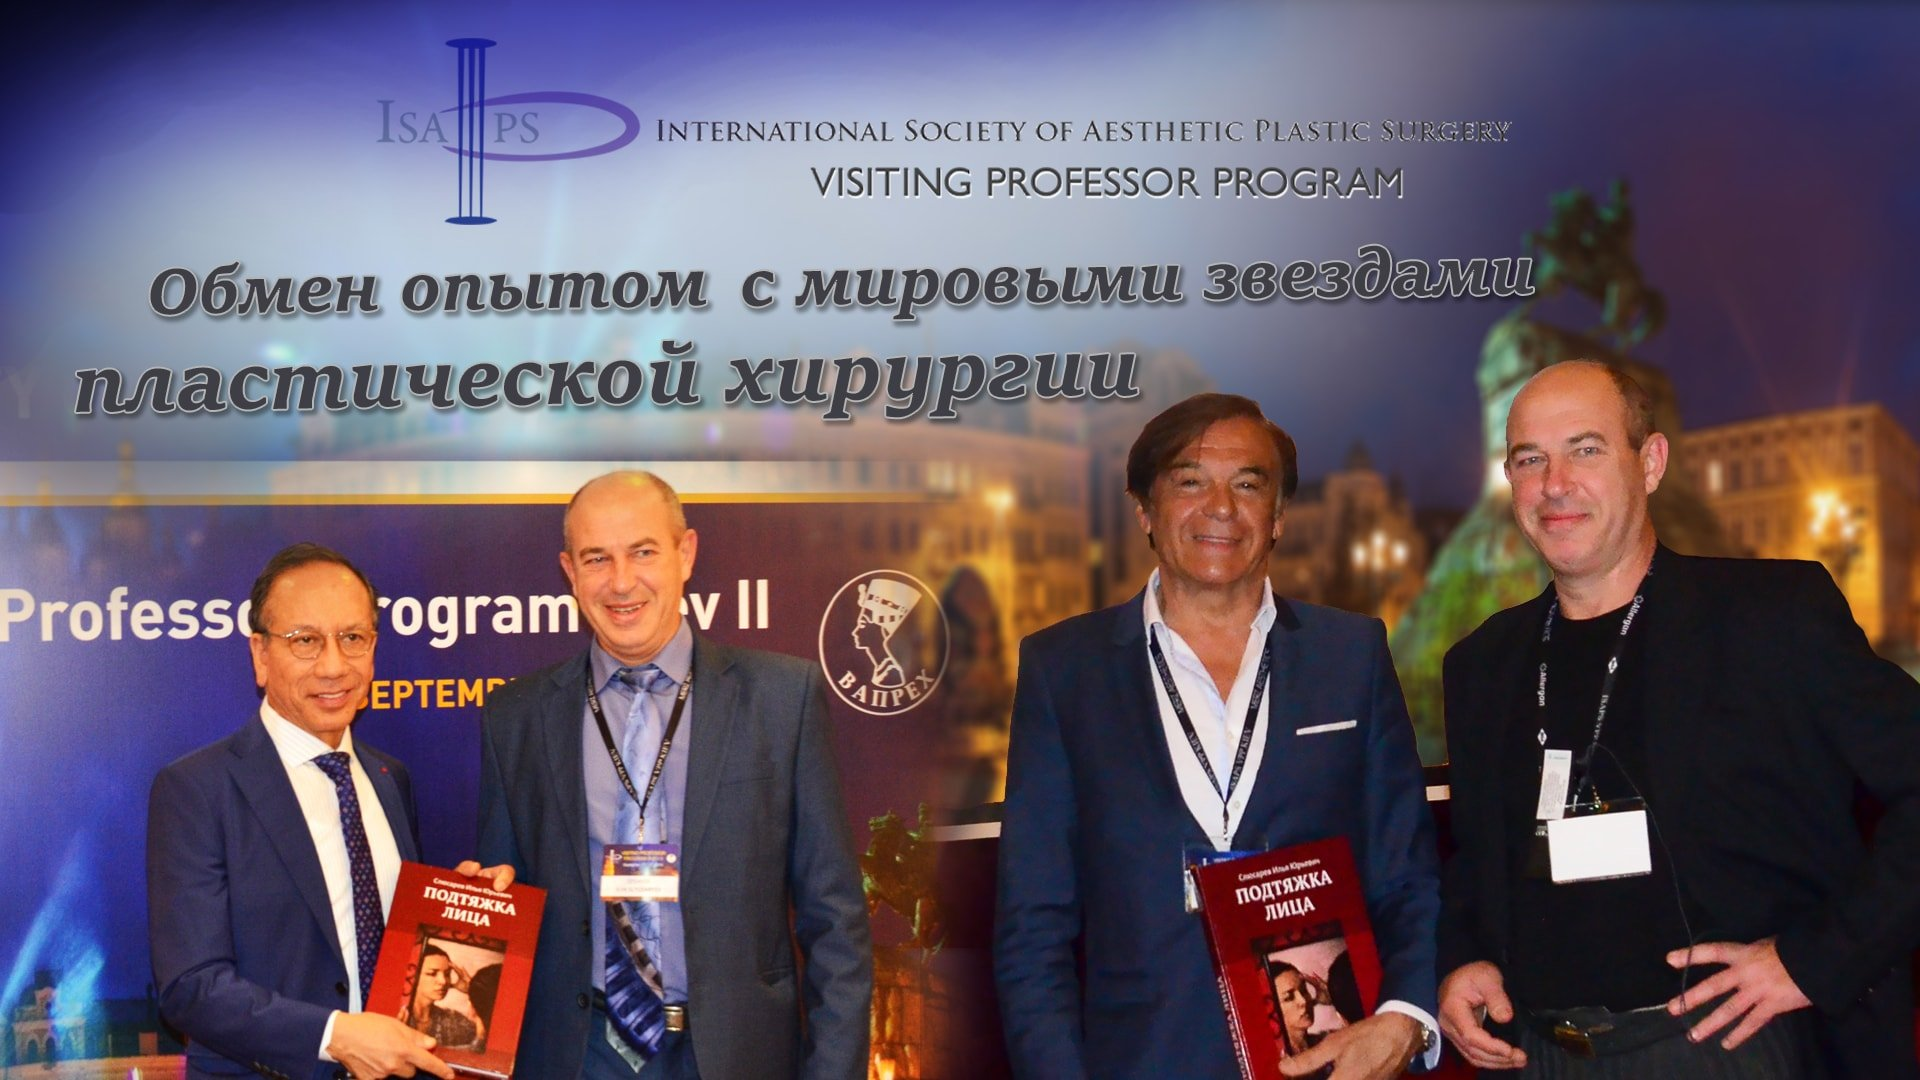 world-wide known STARS OF PLASTIC SURGERY IN UKRAINE photo 1